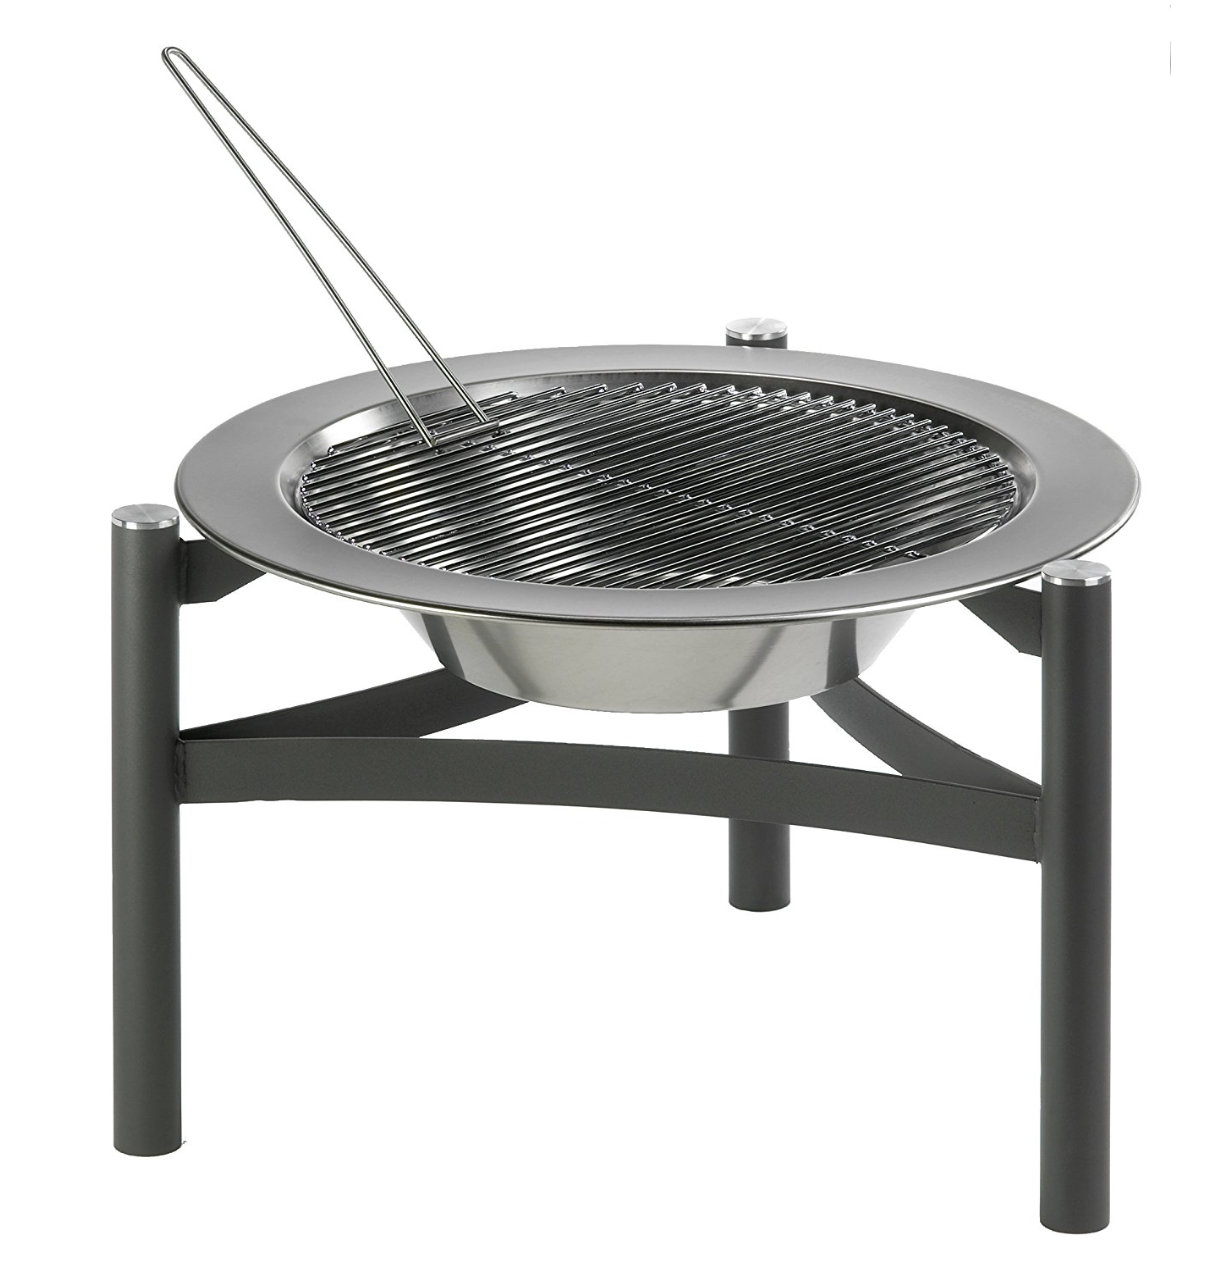 Dancook brings exclusive scandinavian design to exceptionally high quality traditional outdoor charcoal barbecue grills and accessories